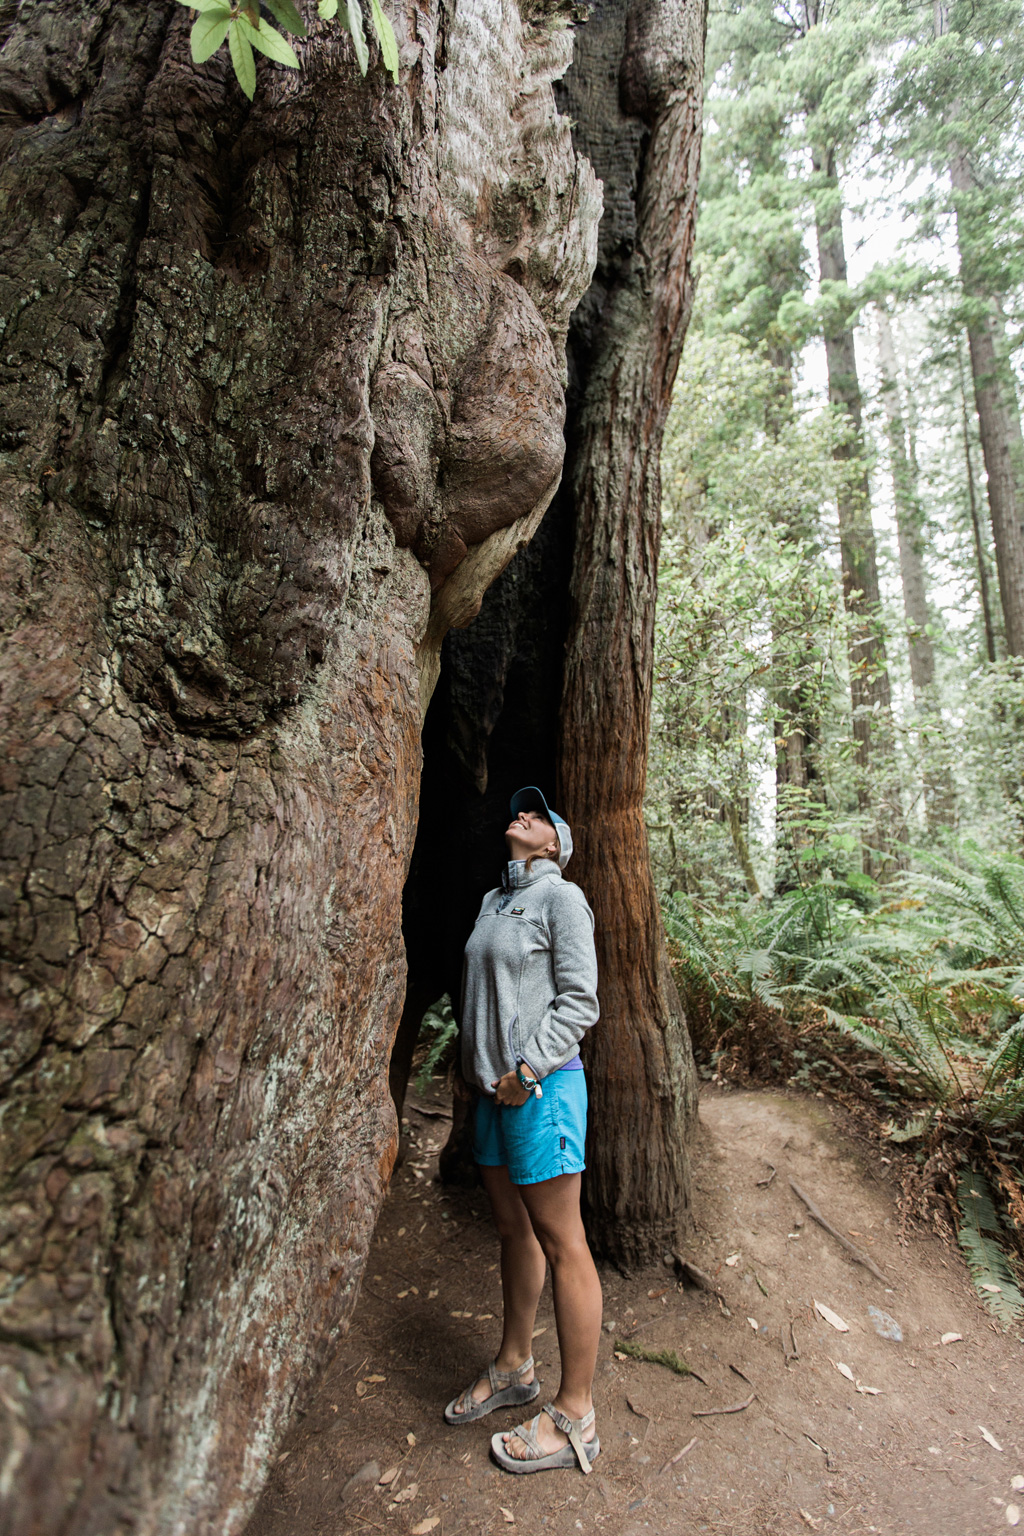 CindyGiovagnoli_Redwoods_CraterLake_MountRainier_PNW_National_Park_trees_camp_road_trip-014.jpg